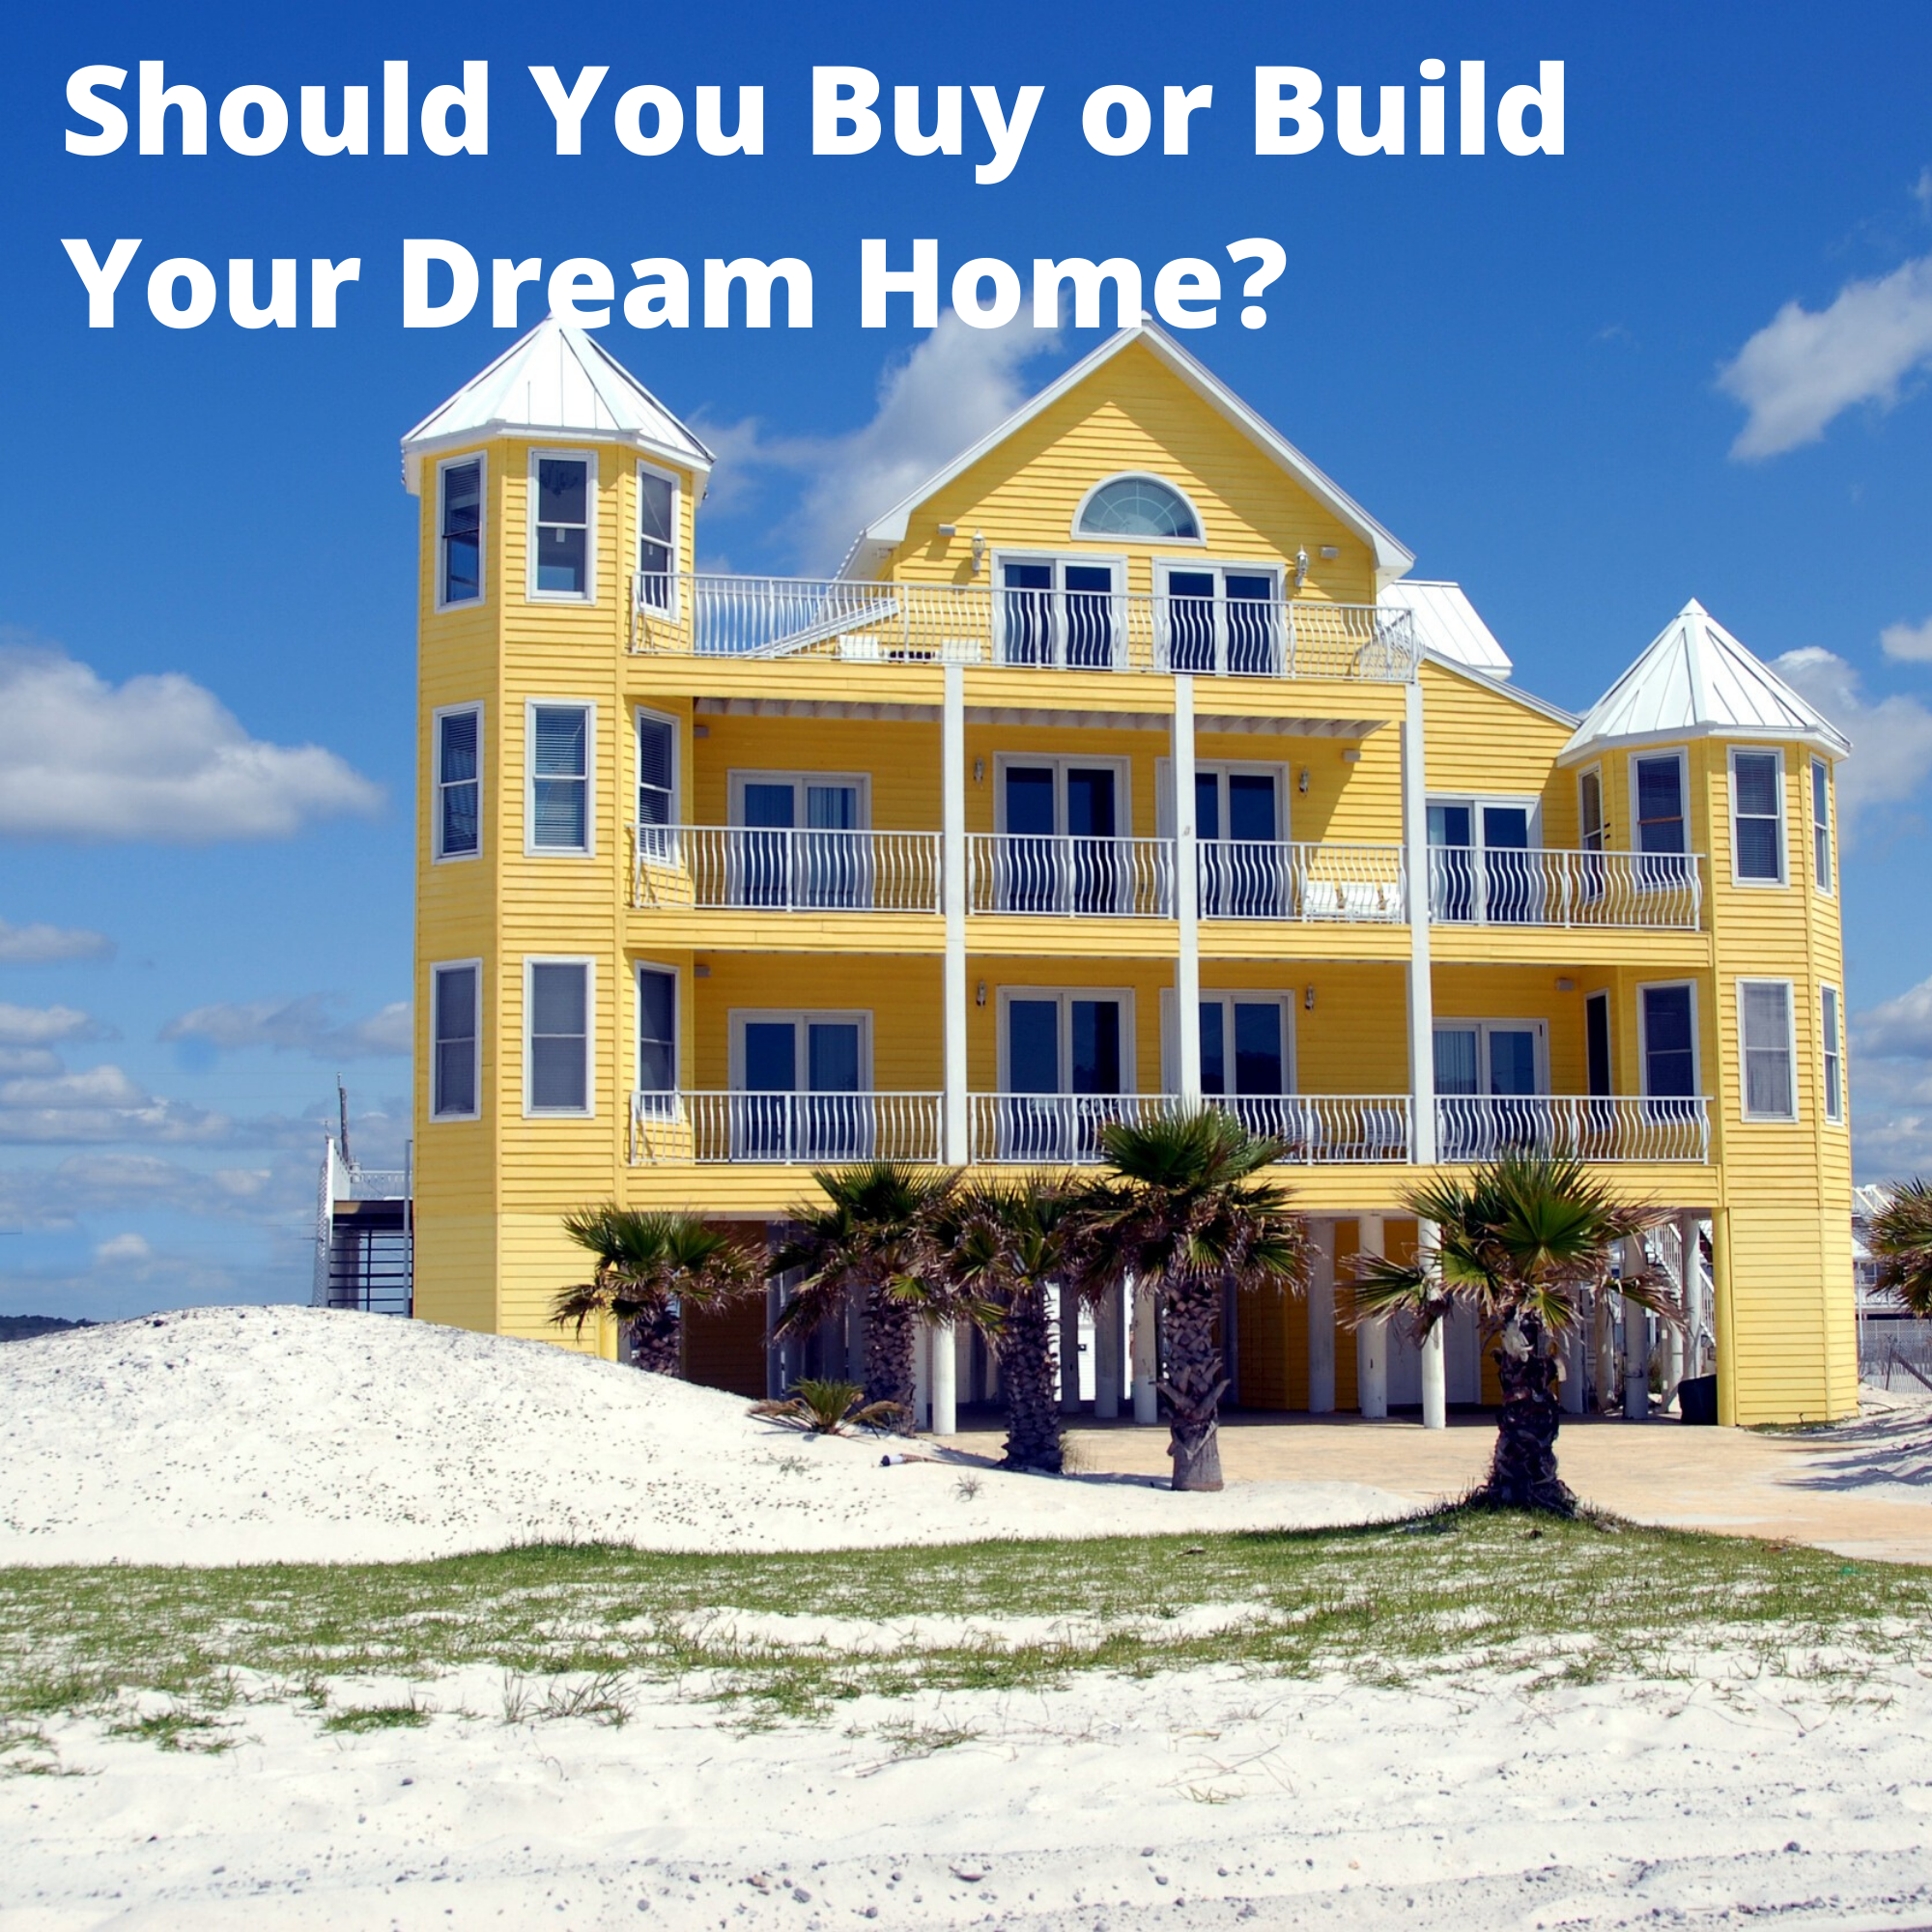 Should You Buy or Build Your Dream Home?